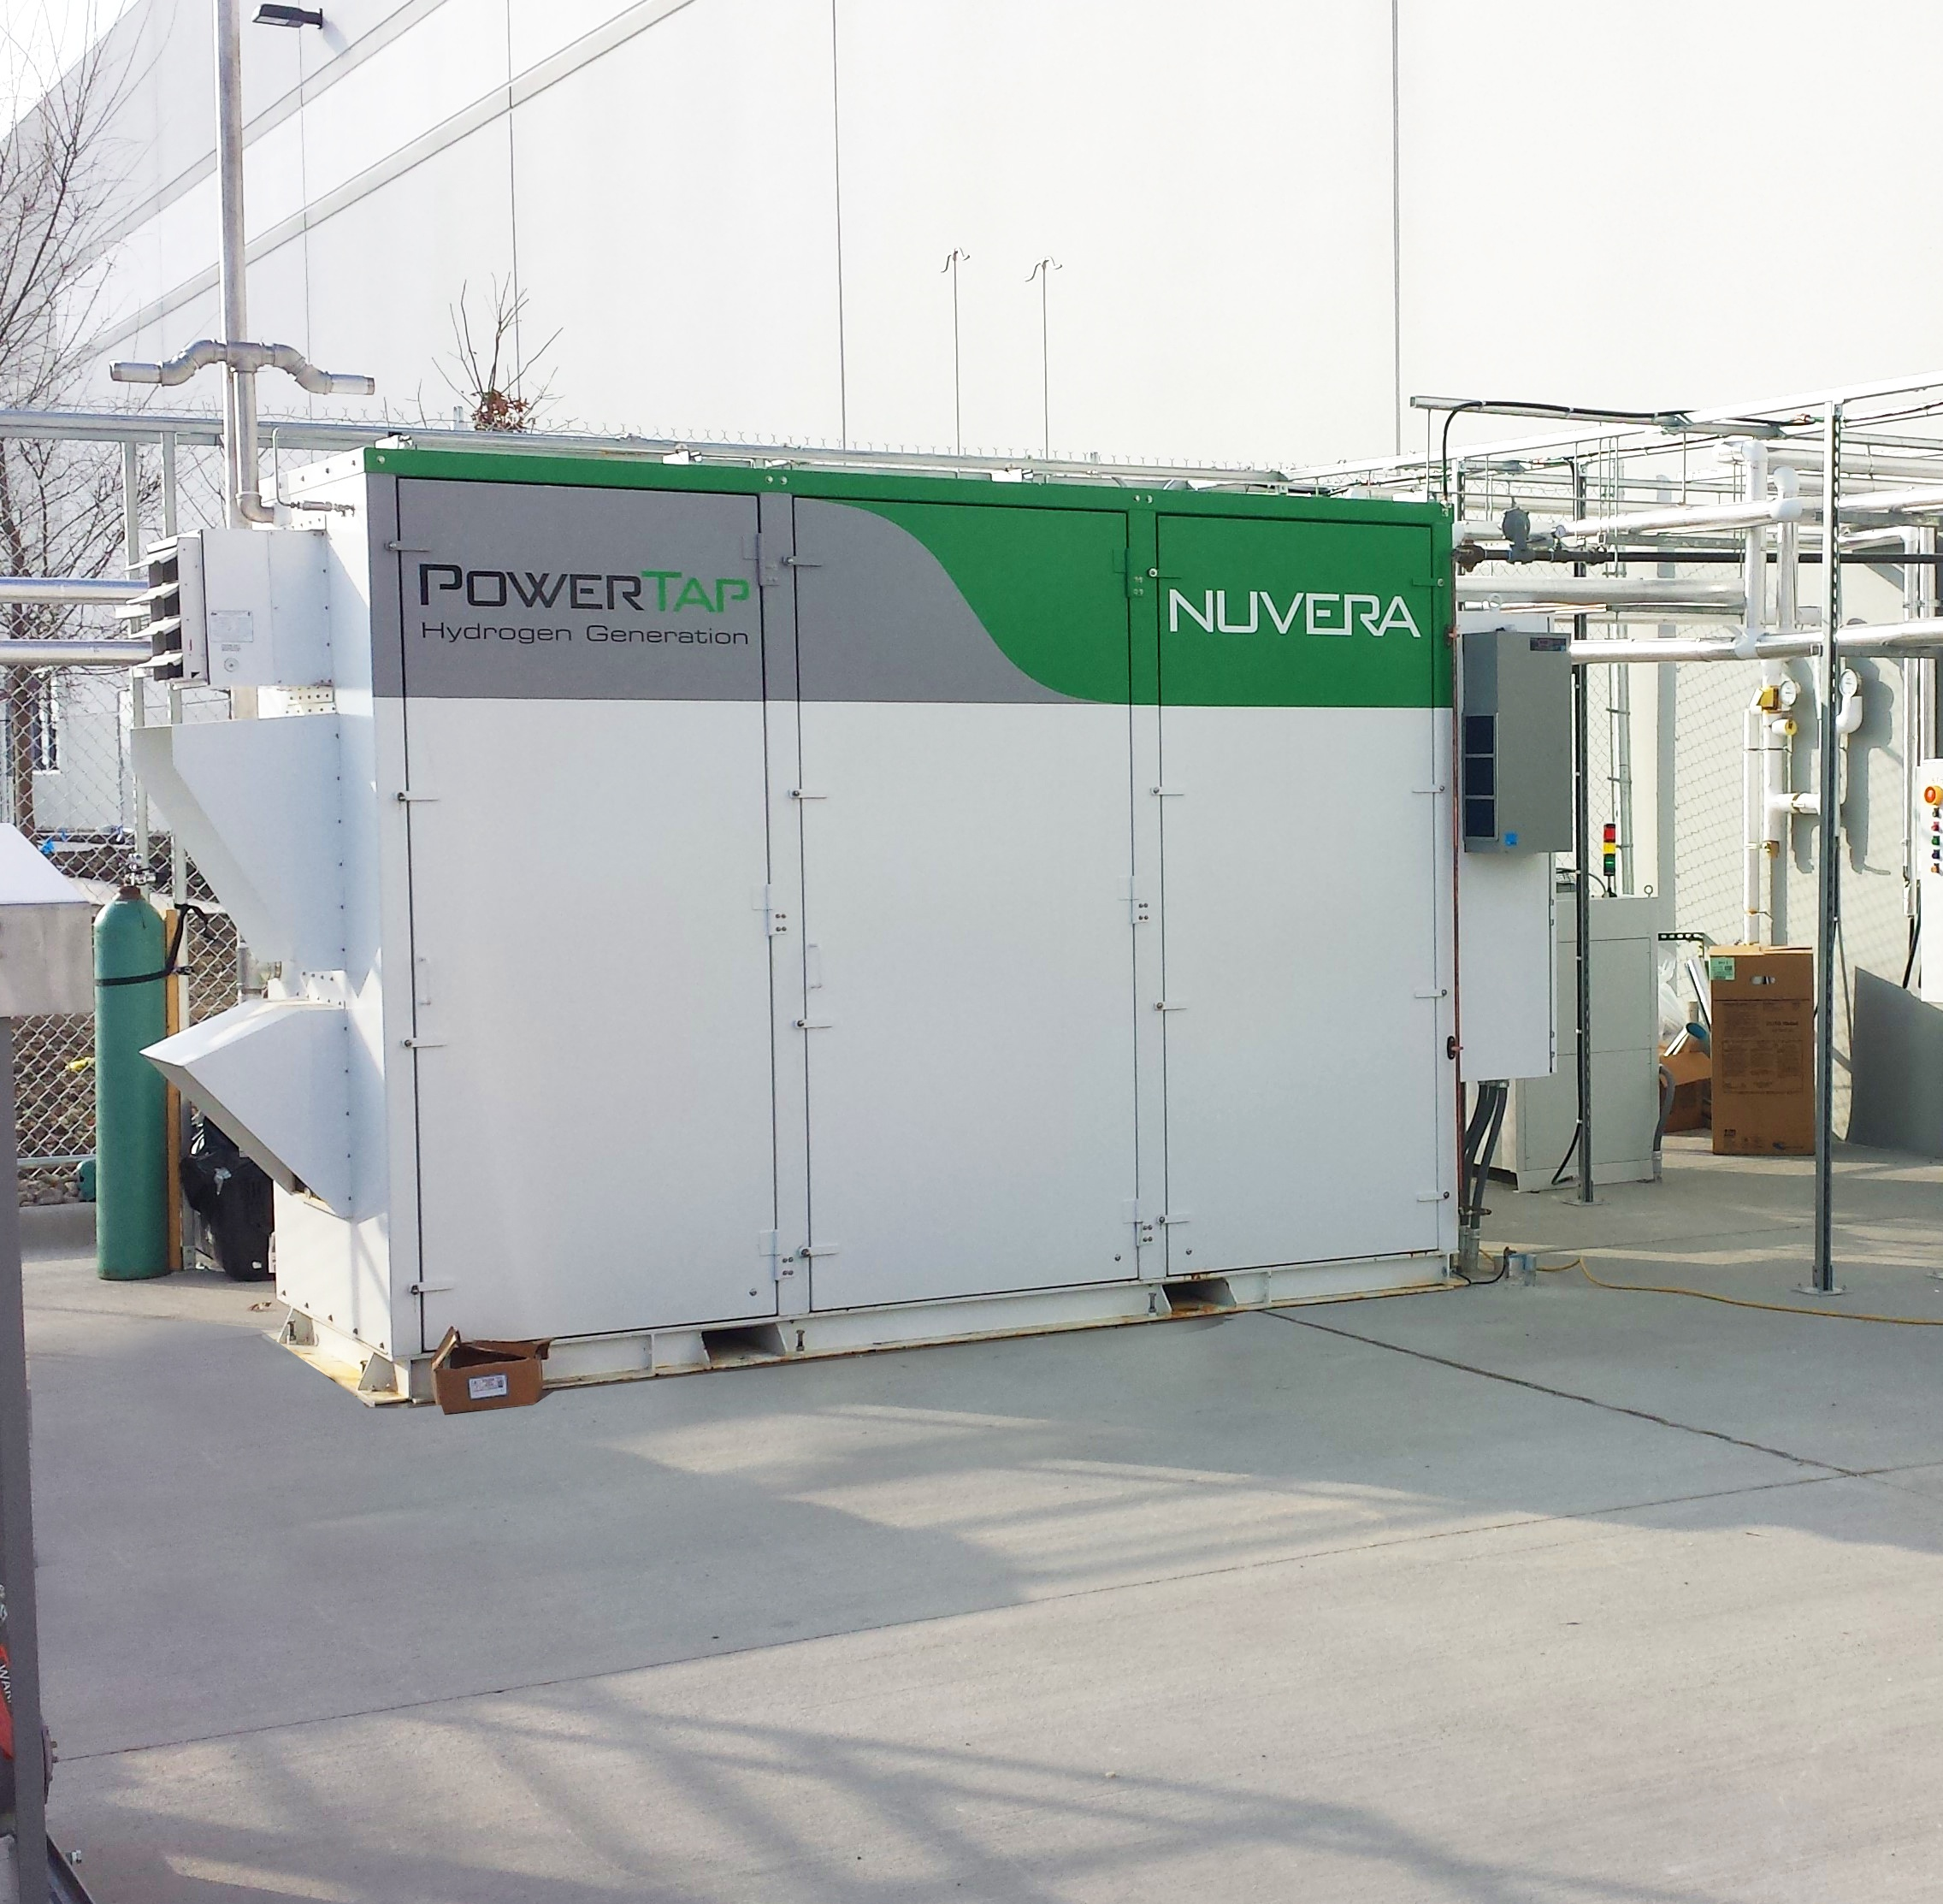 Nuvera Fuel Cells to Supply Hydrogen at Ace Hardware's New Distribution Center